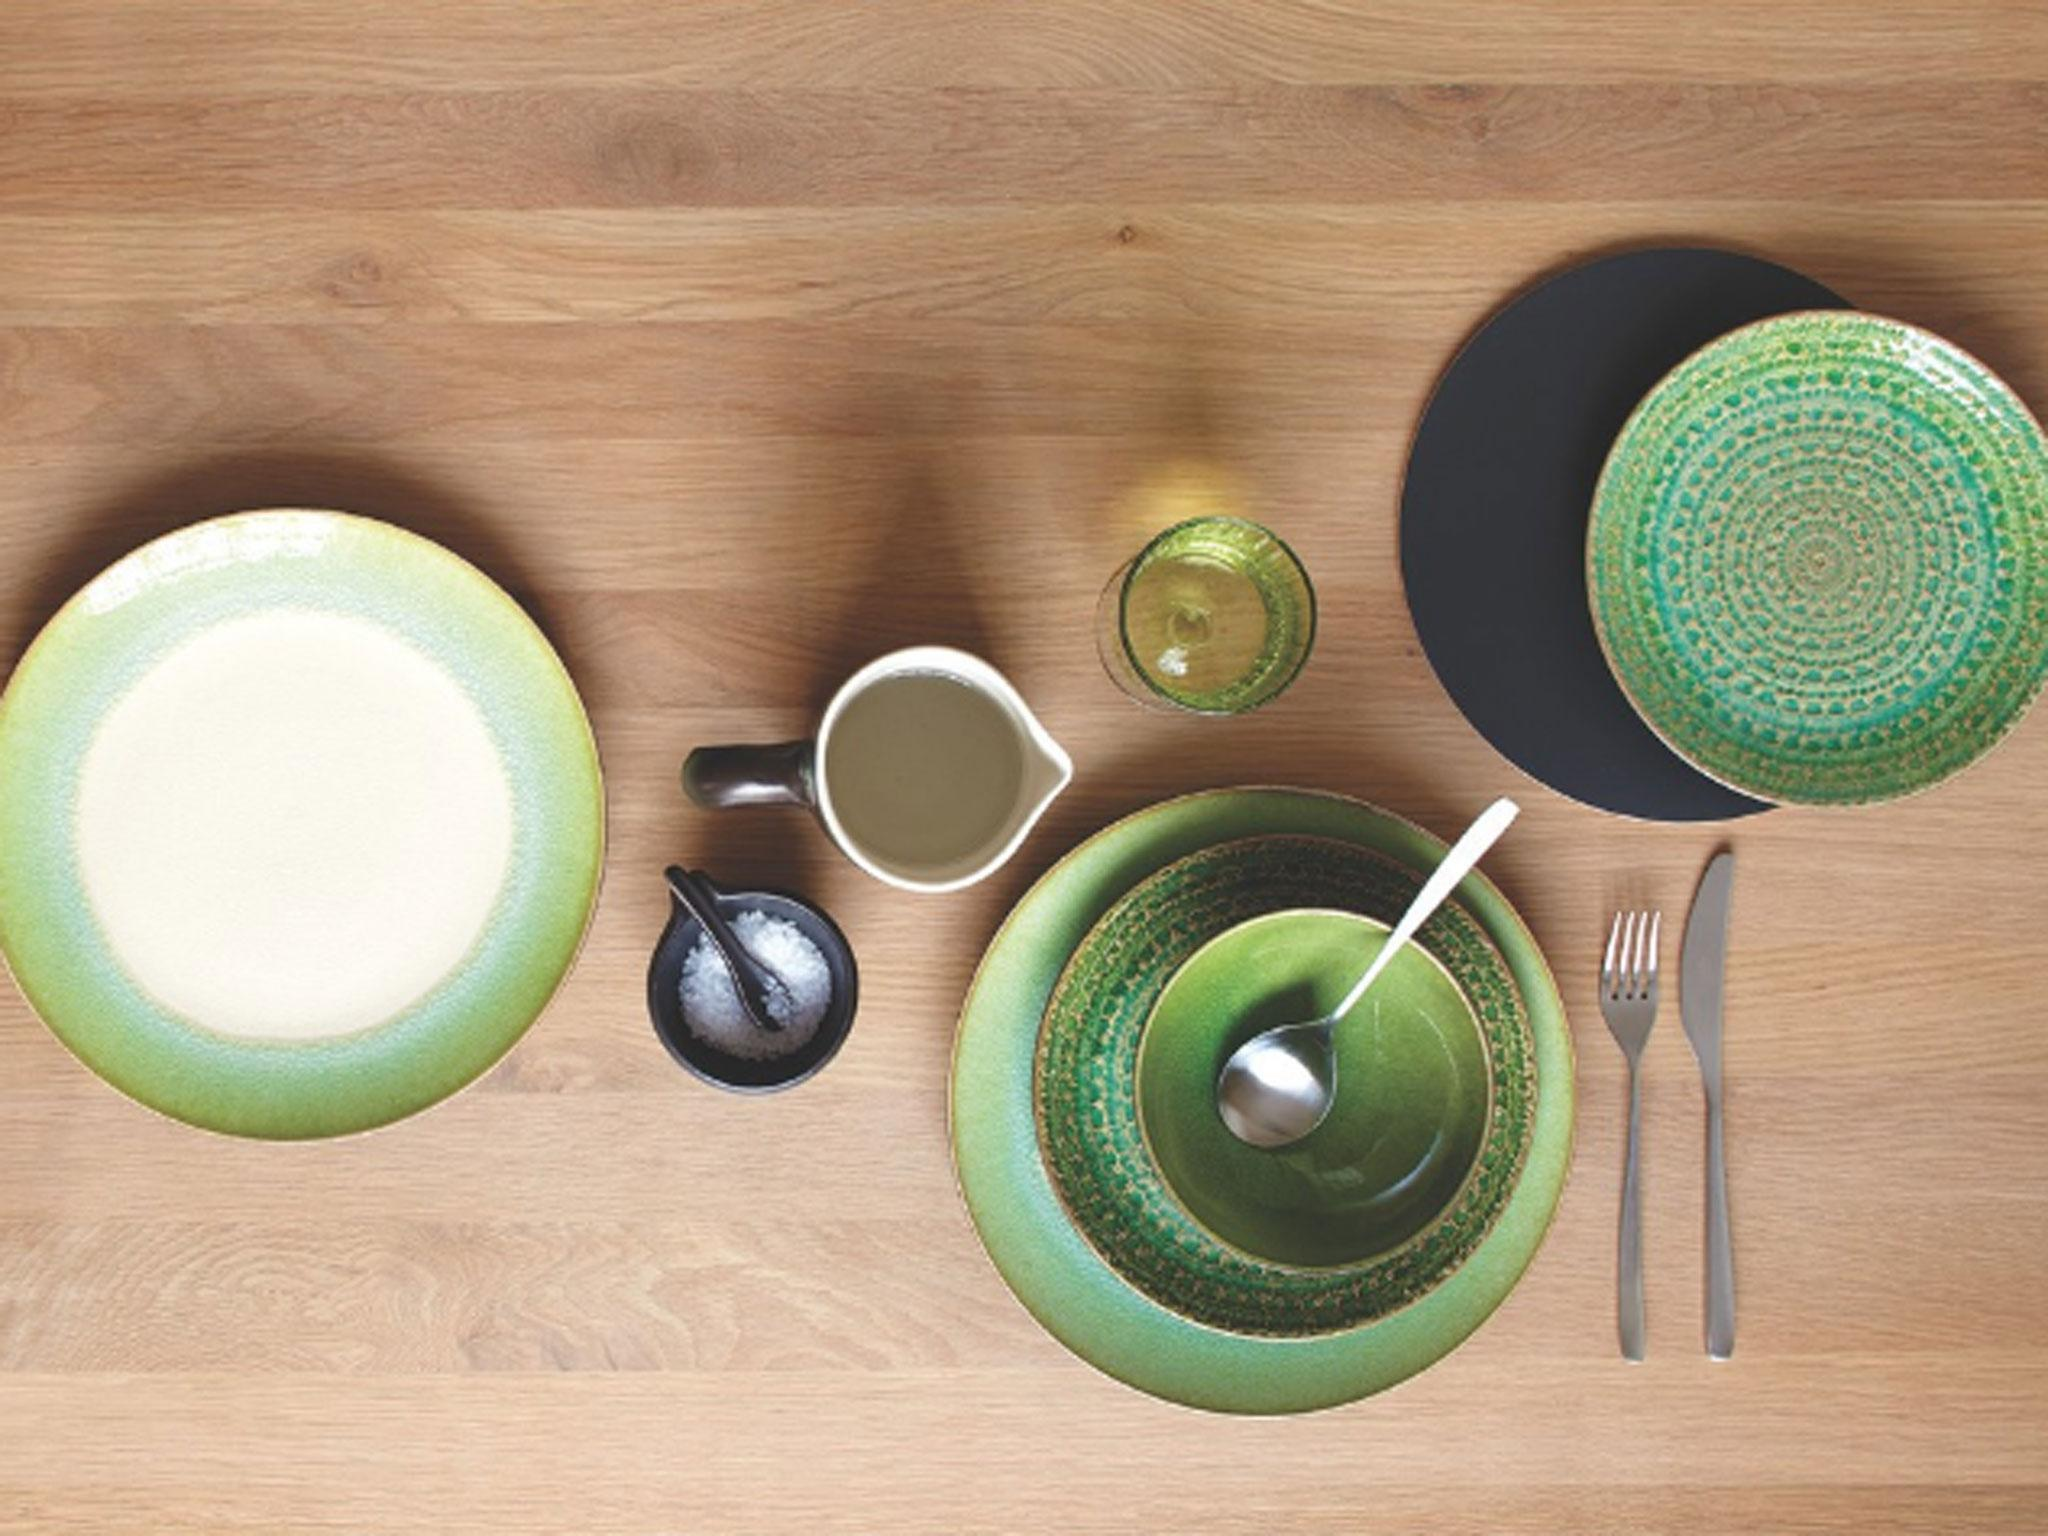 & 10 best plate sets | The Independent